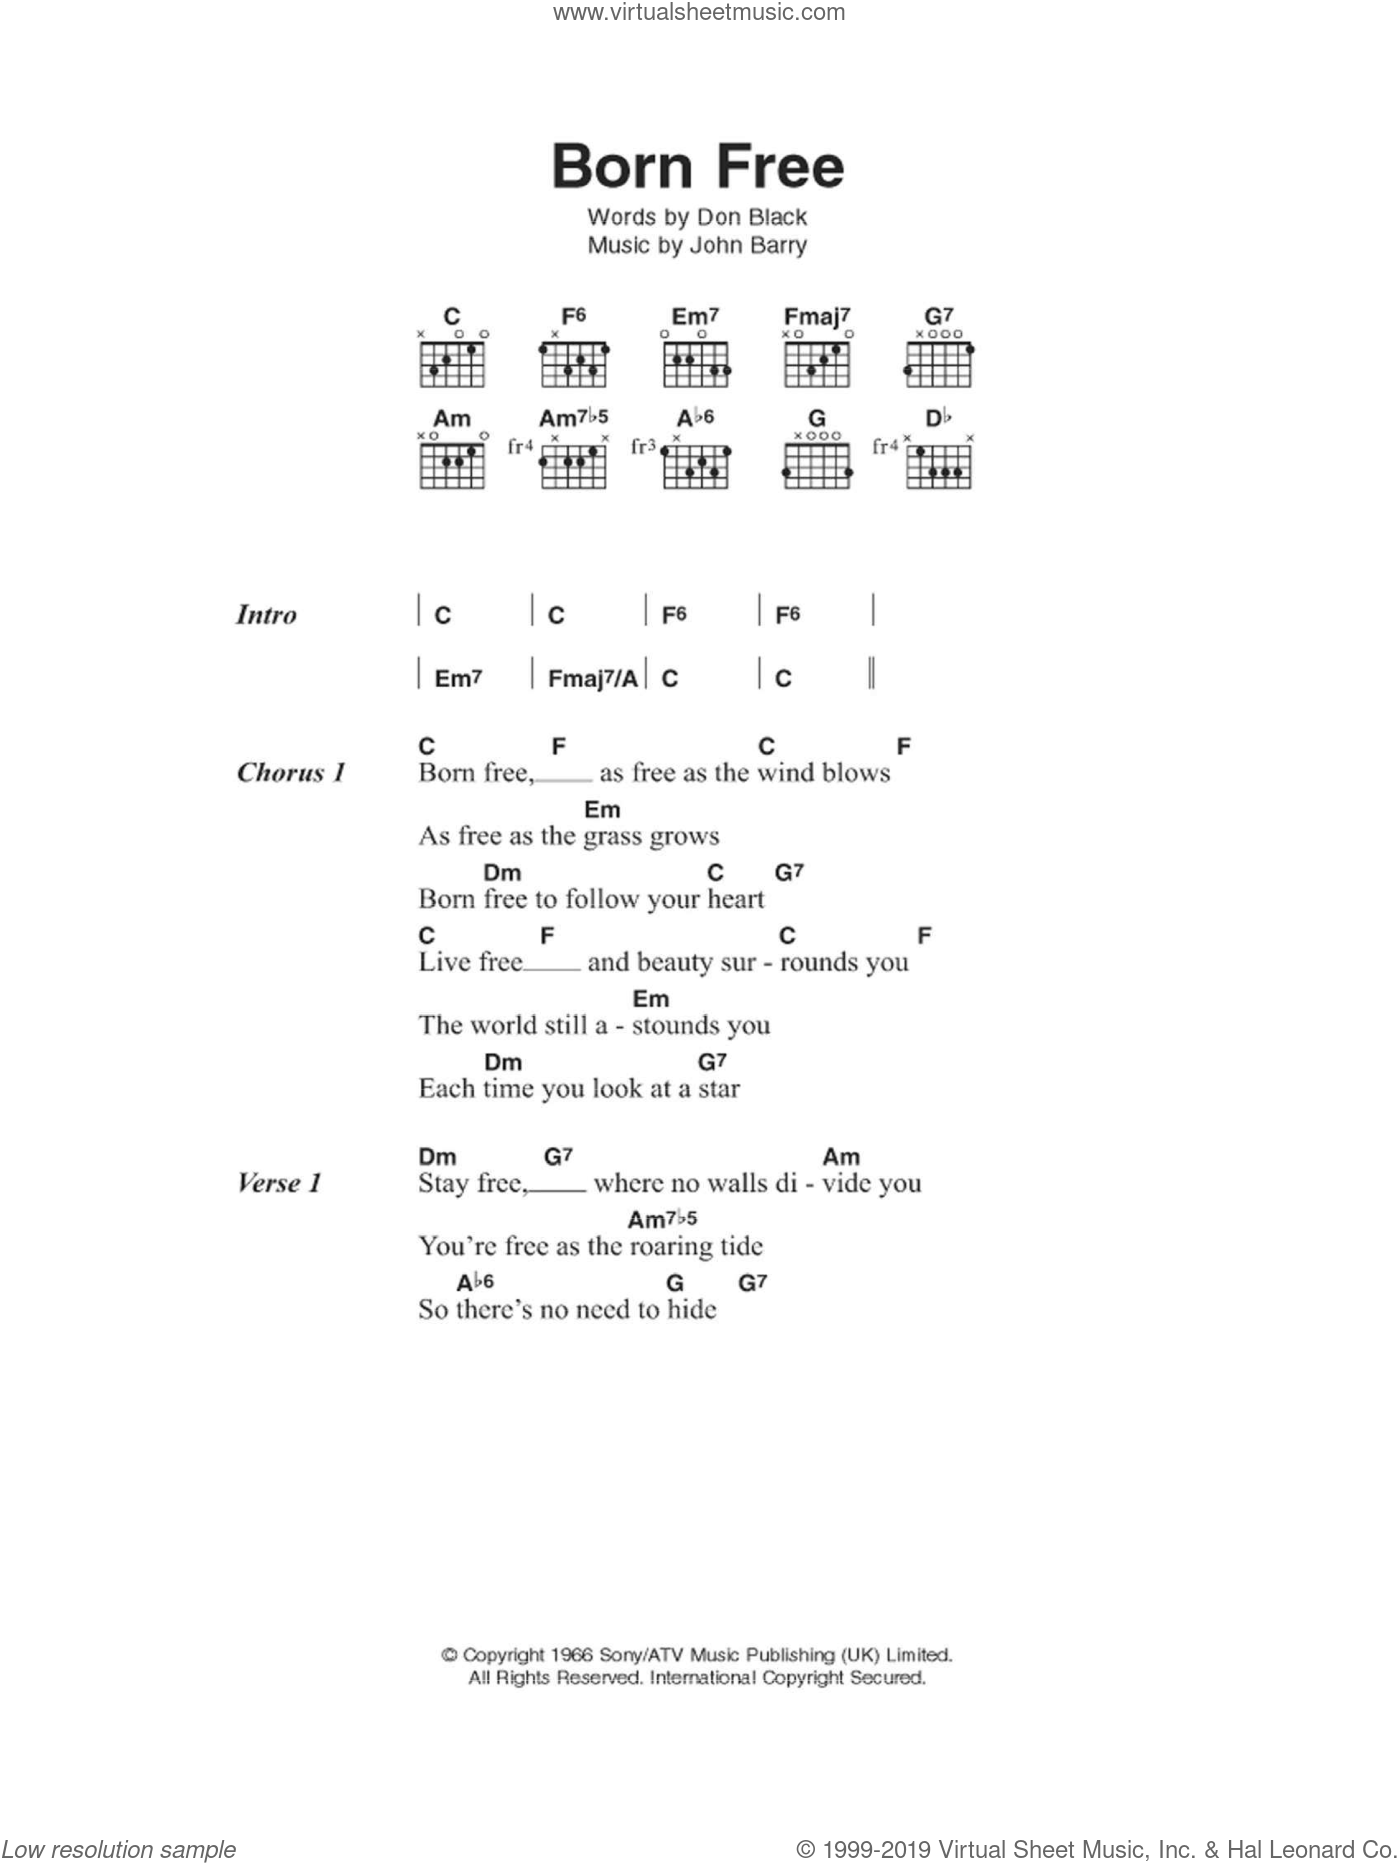 Born Free sheet music for guitar (chords, lyrics, melody) by John Barry